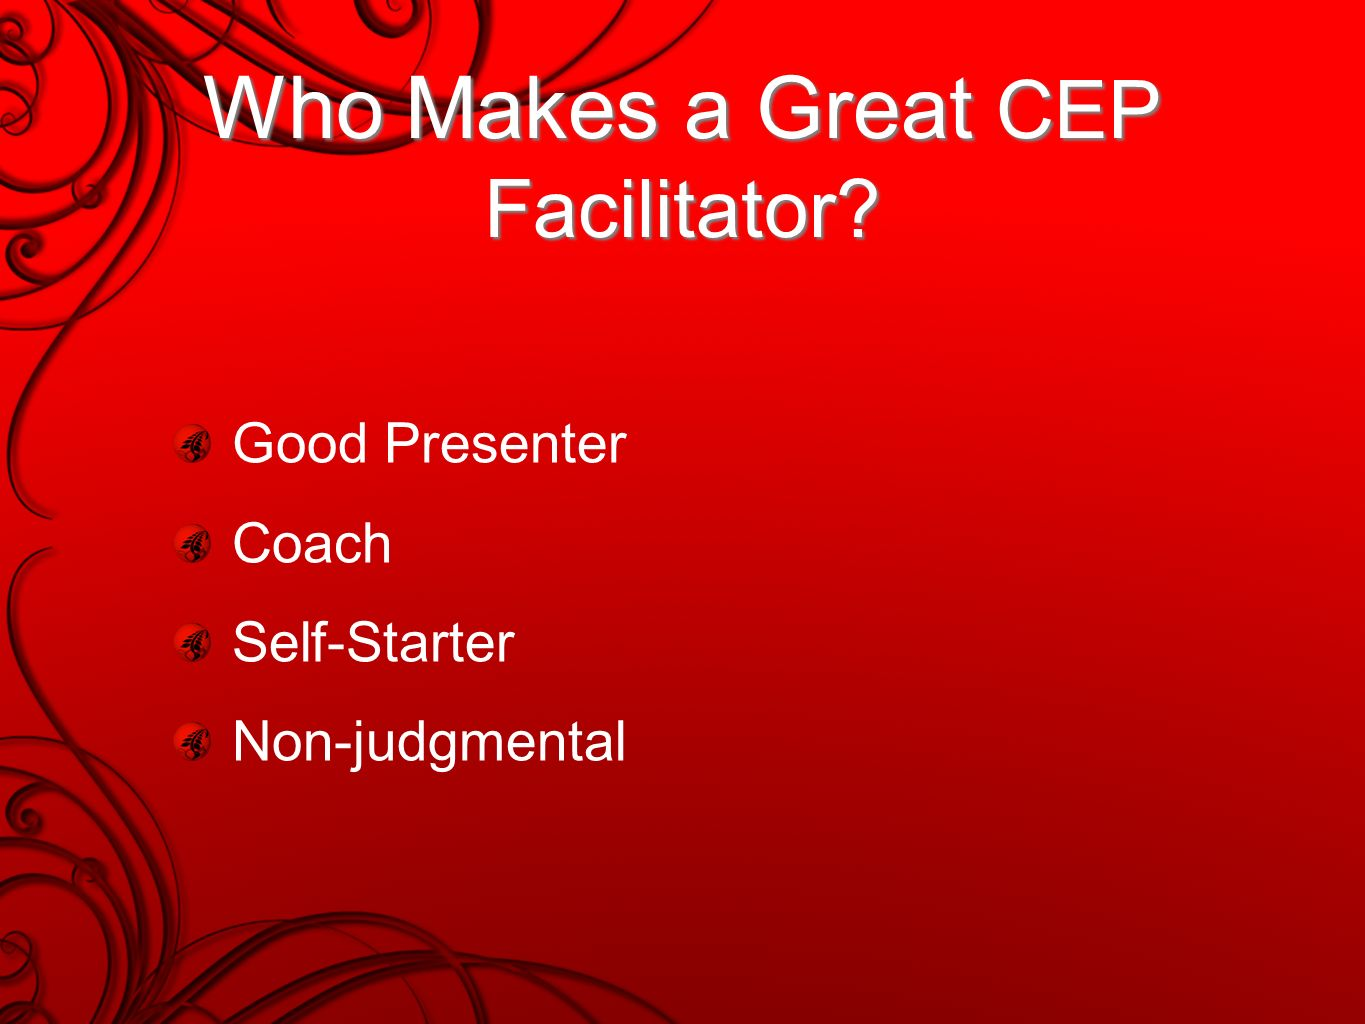 Who Makes a Great CEP Facilitator Good Presenter Coach Self-Starter Non-judgmental